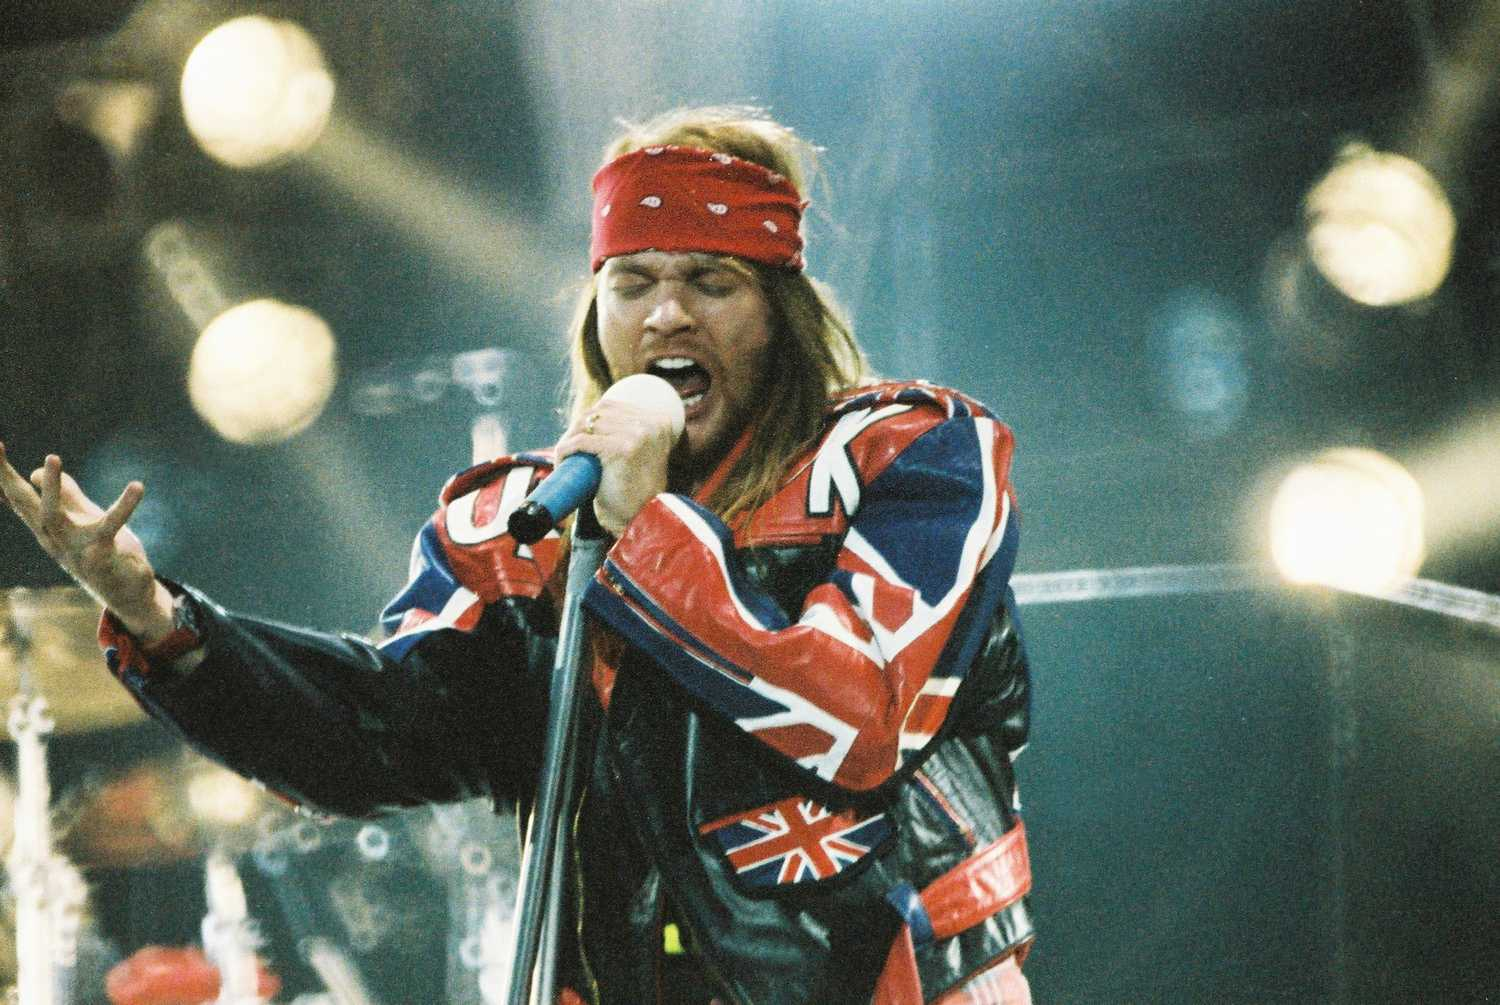 Axl Rose performing on stage.